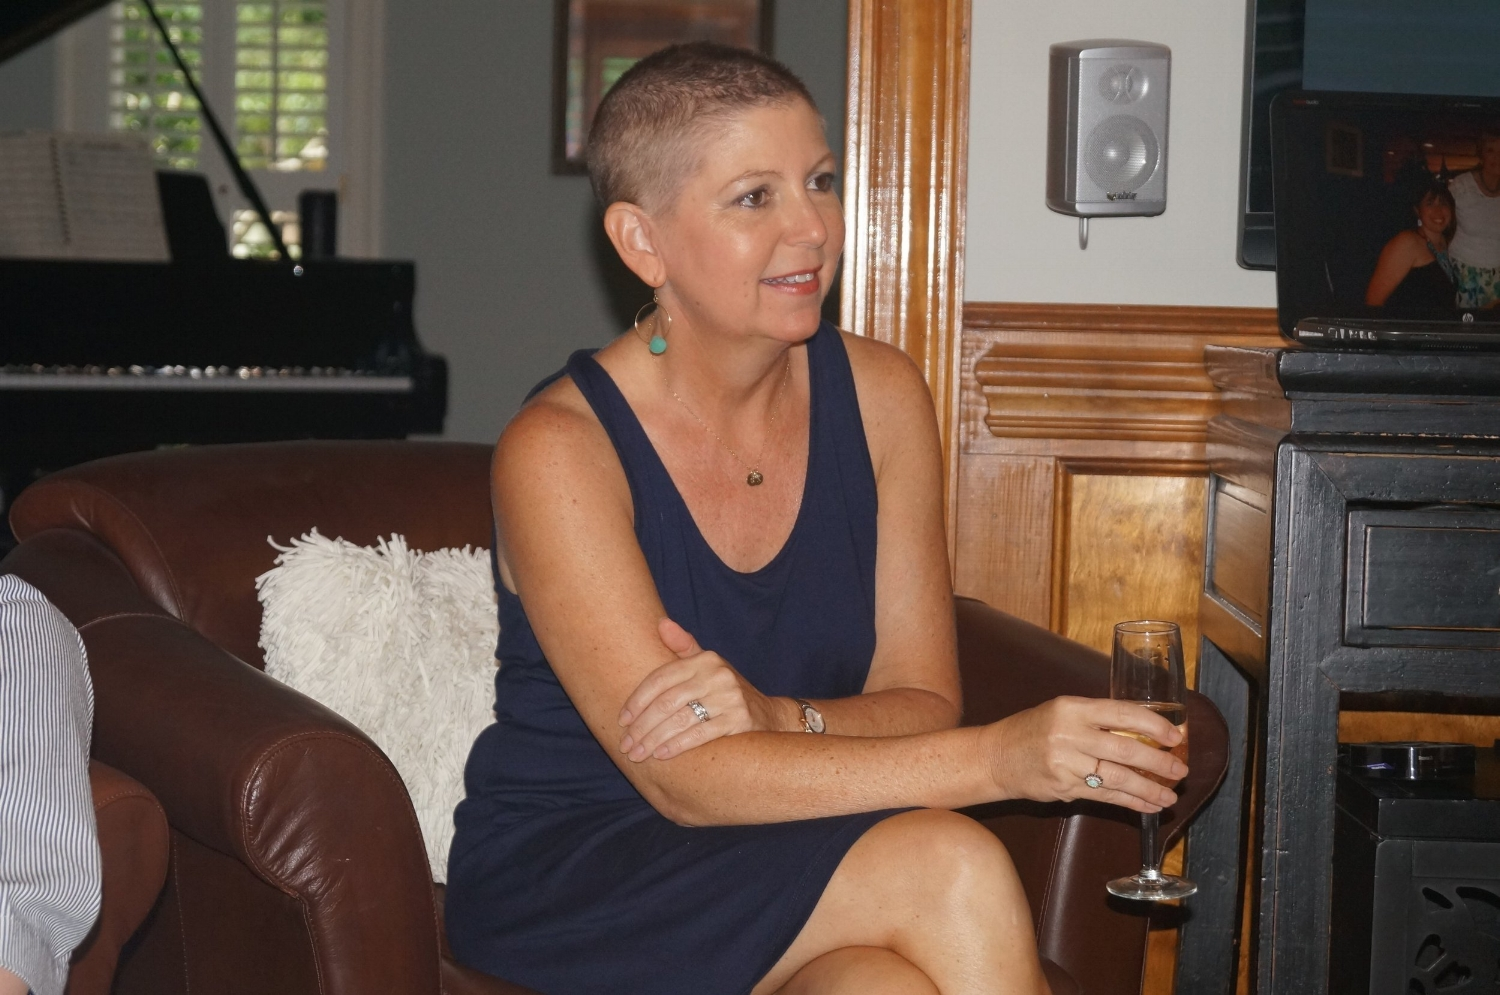 Suzanne with her head shaved, starting treatment